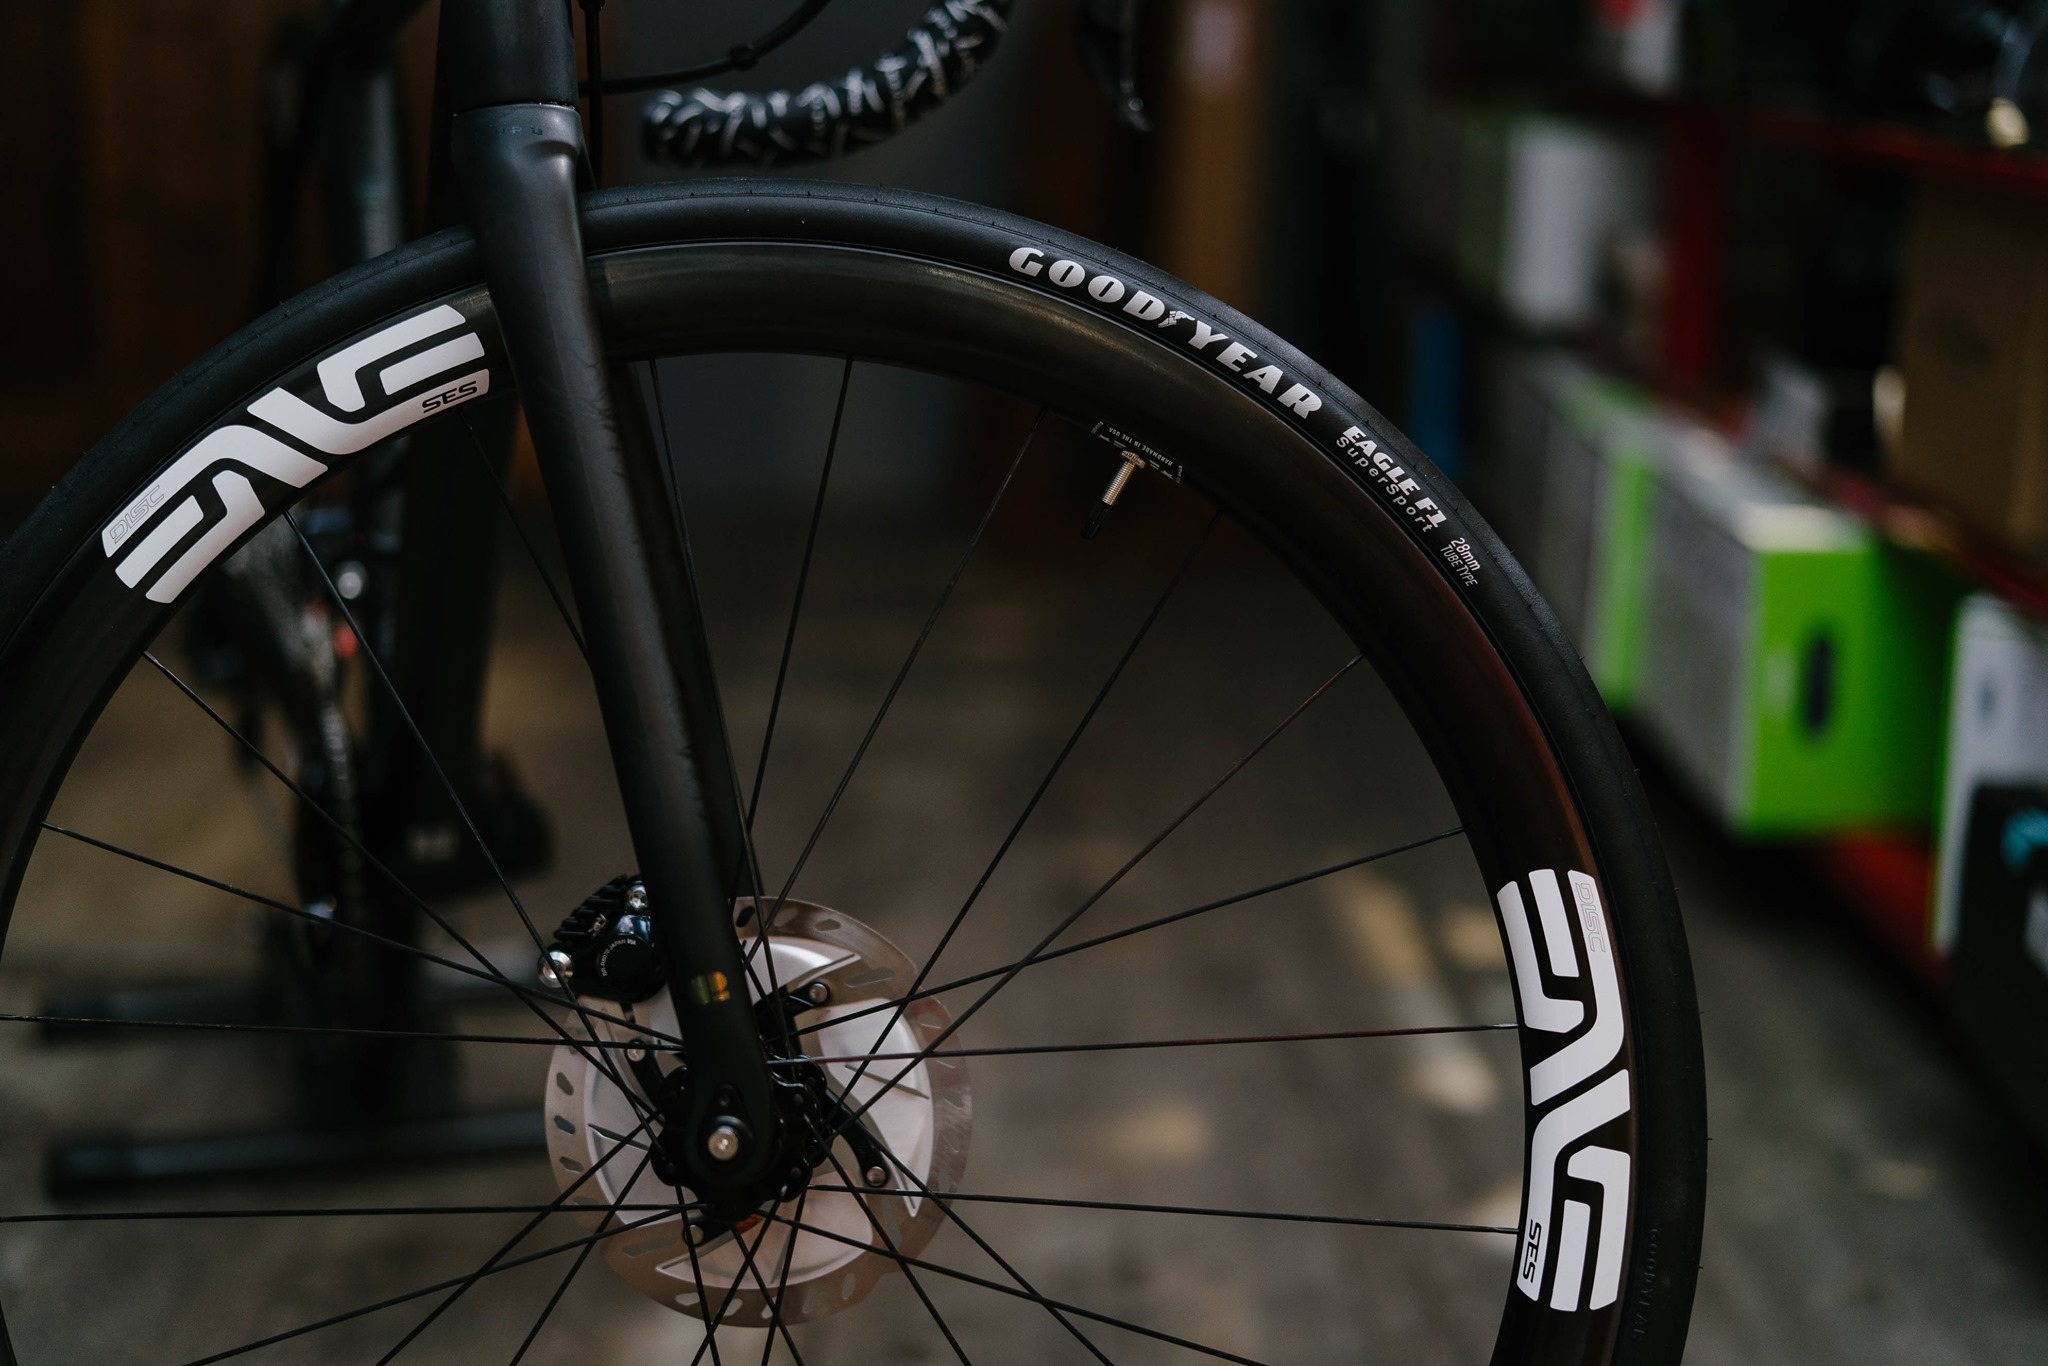 Goodyear Bicycle Tires is expanding its road tire line with affordable tubeless models.